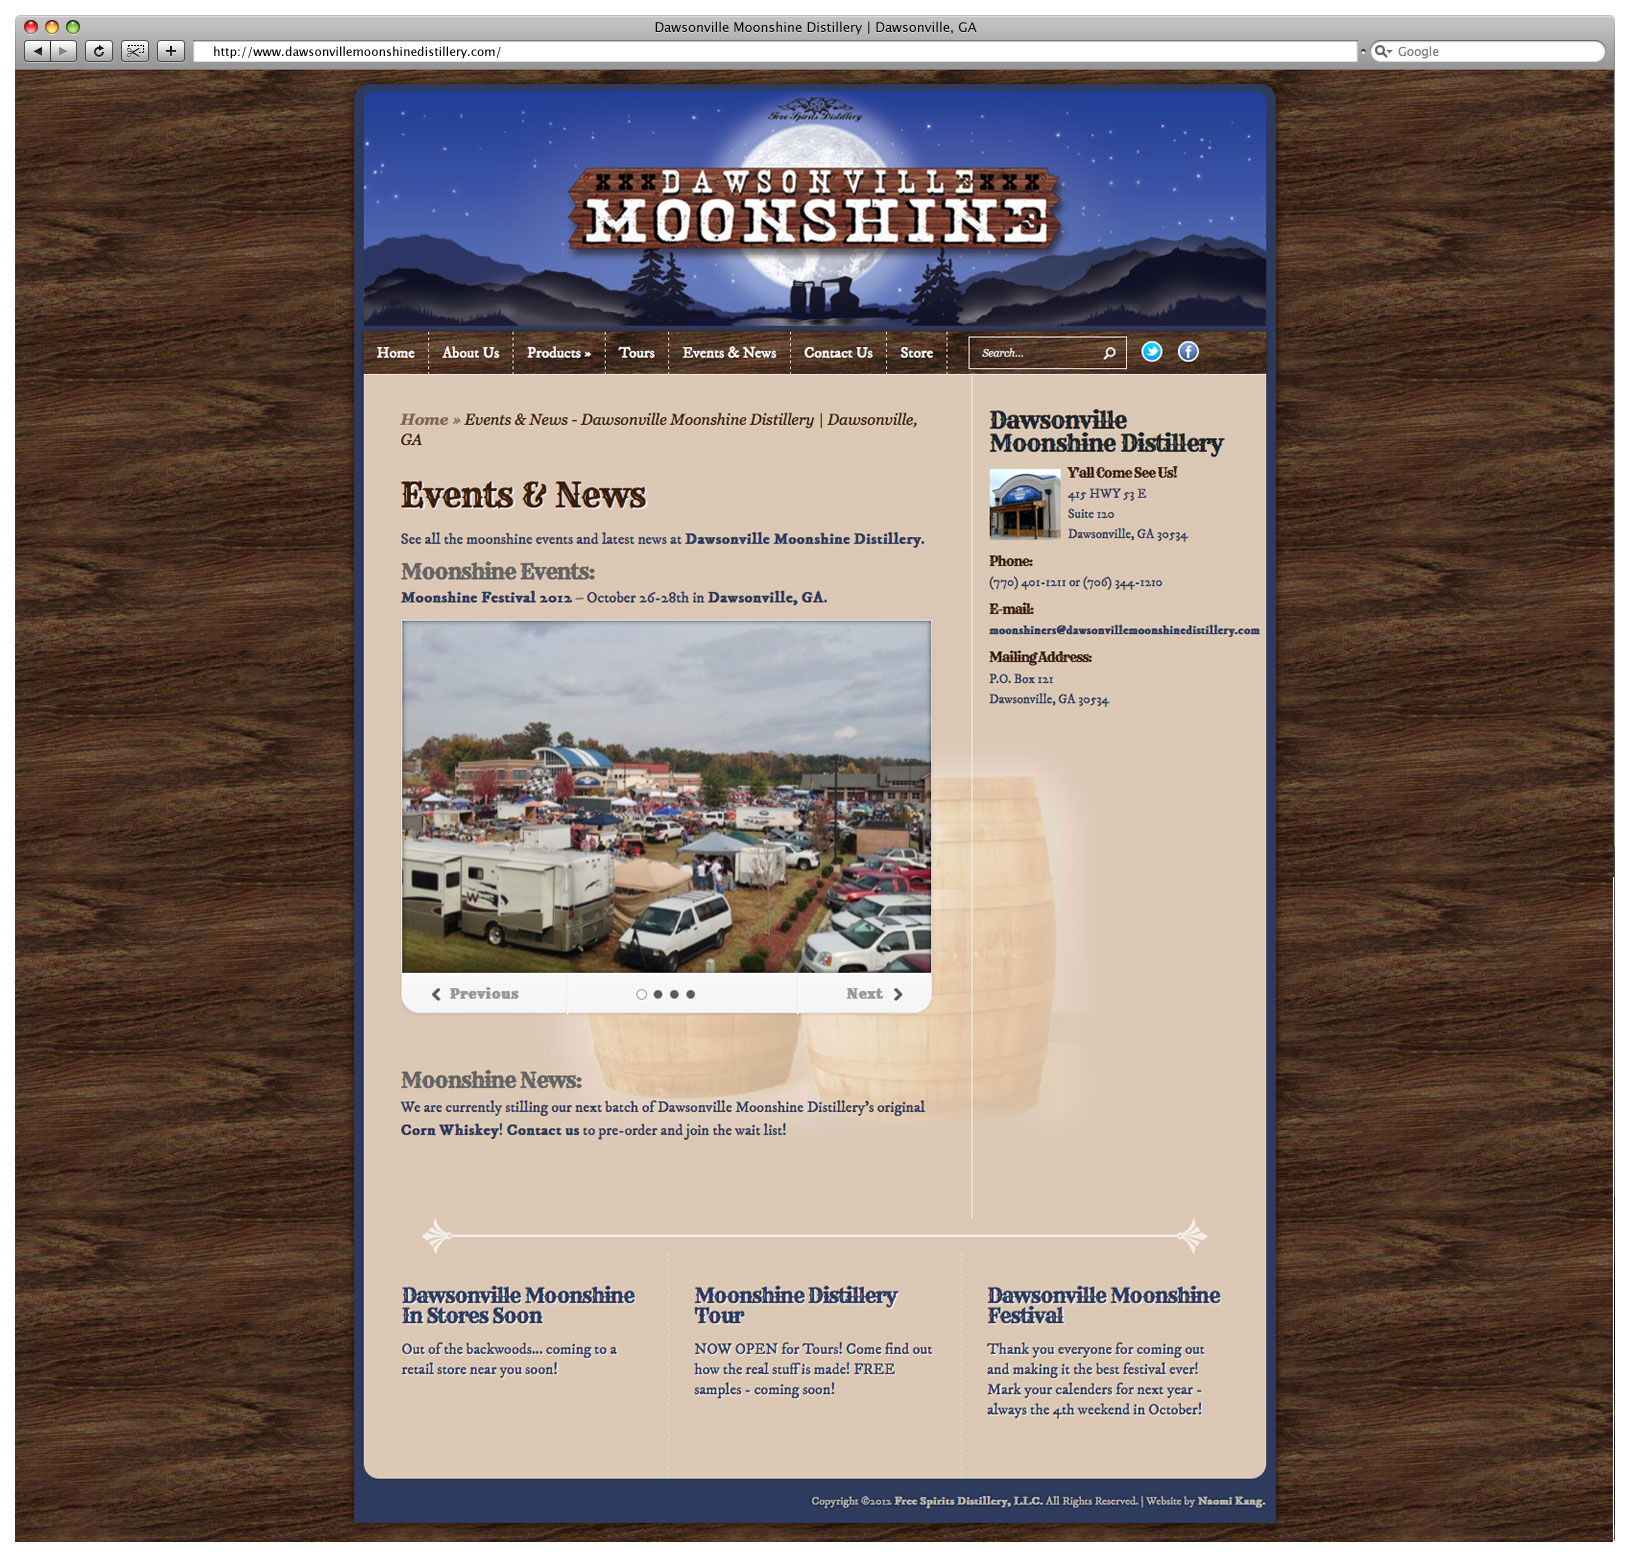 Dawsonville Moonshine Distillery Website – Events & News Page